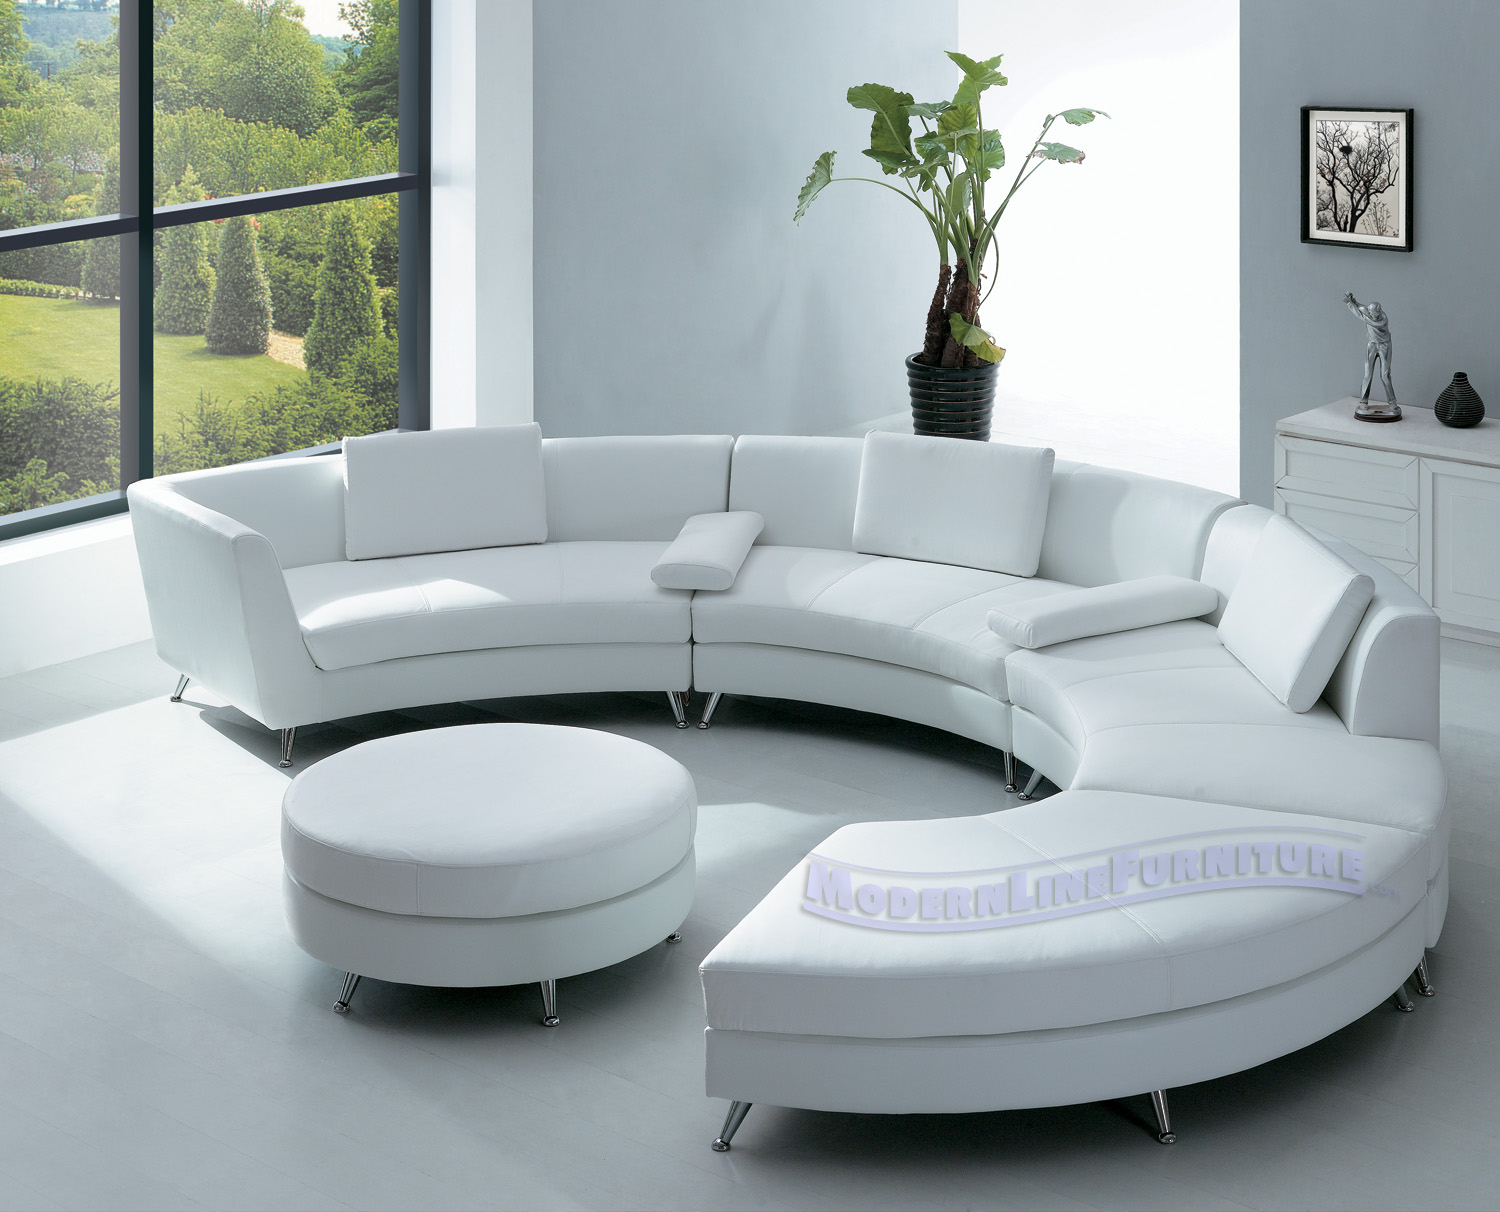 Designer Couch Elegance Of Living Sofa Sets Designs